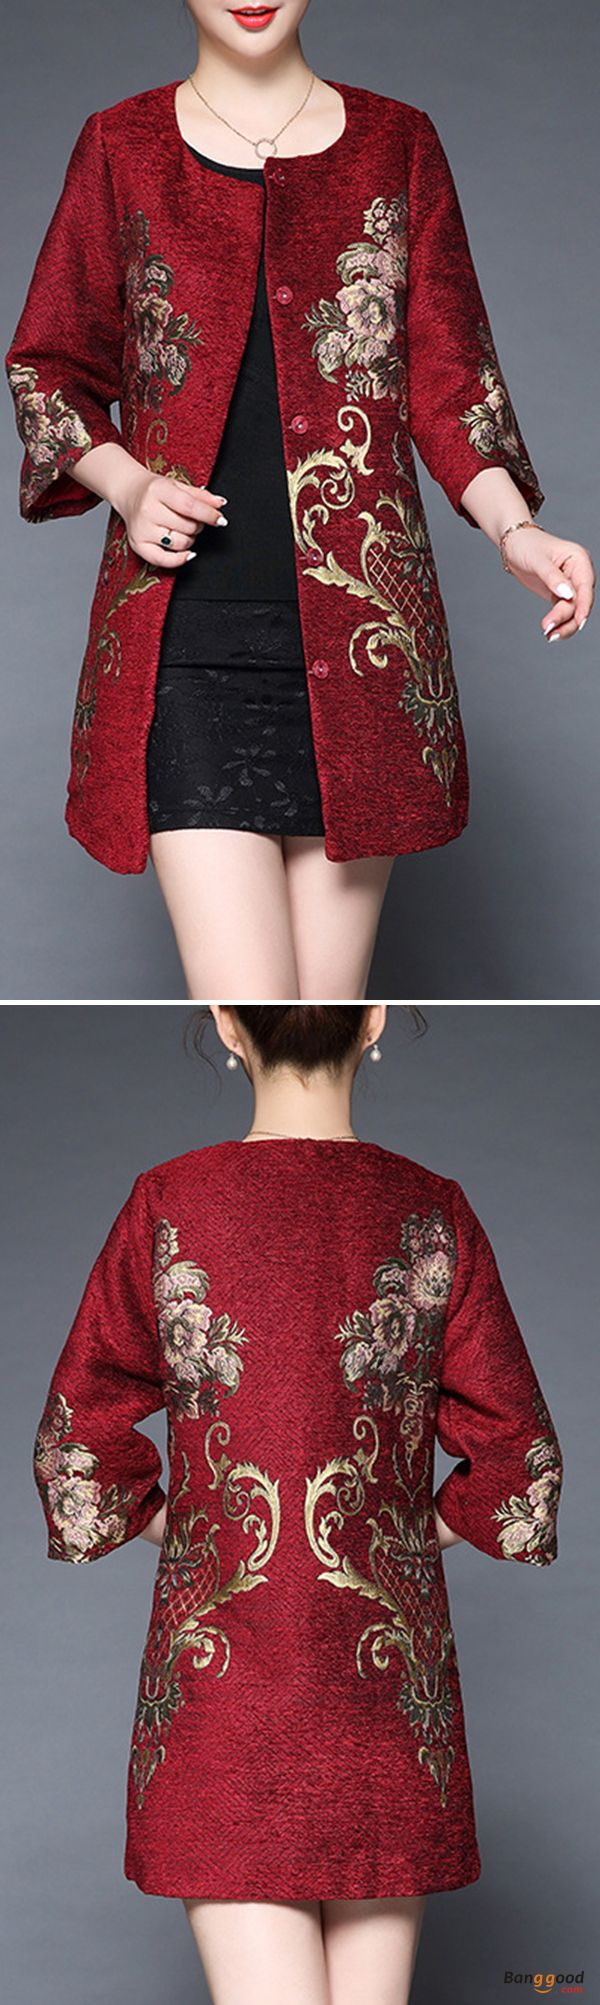 US$56.99 + Free shipping. Size: L~3XL. Color: Blue, Off-white, Red. Fall in love with elegant and vintage style! Plus Size Elegant Women Embroidery Coats. #coats #embroidery #plussize #outfit